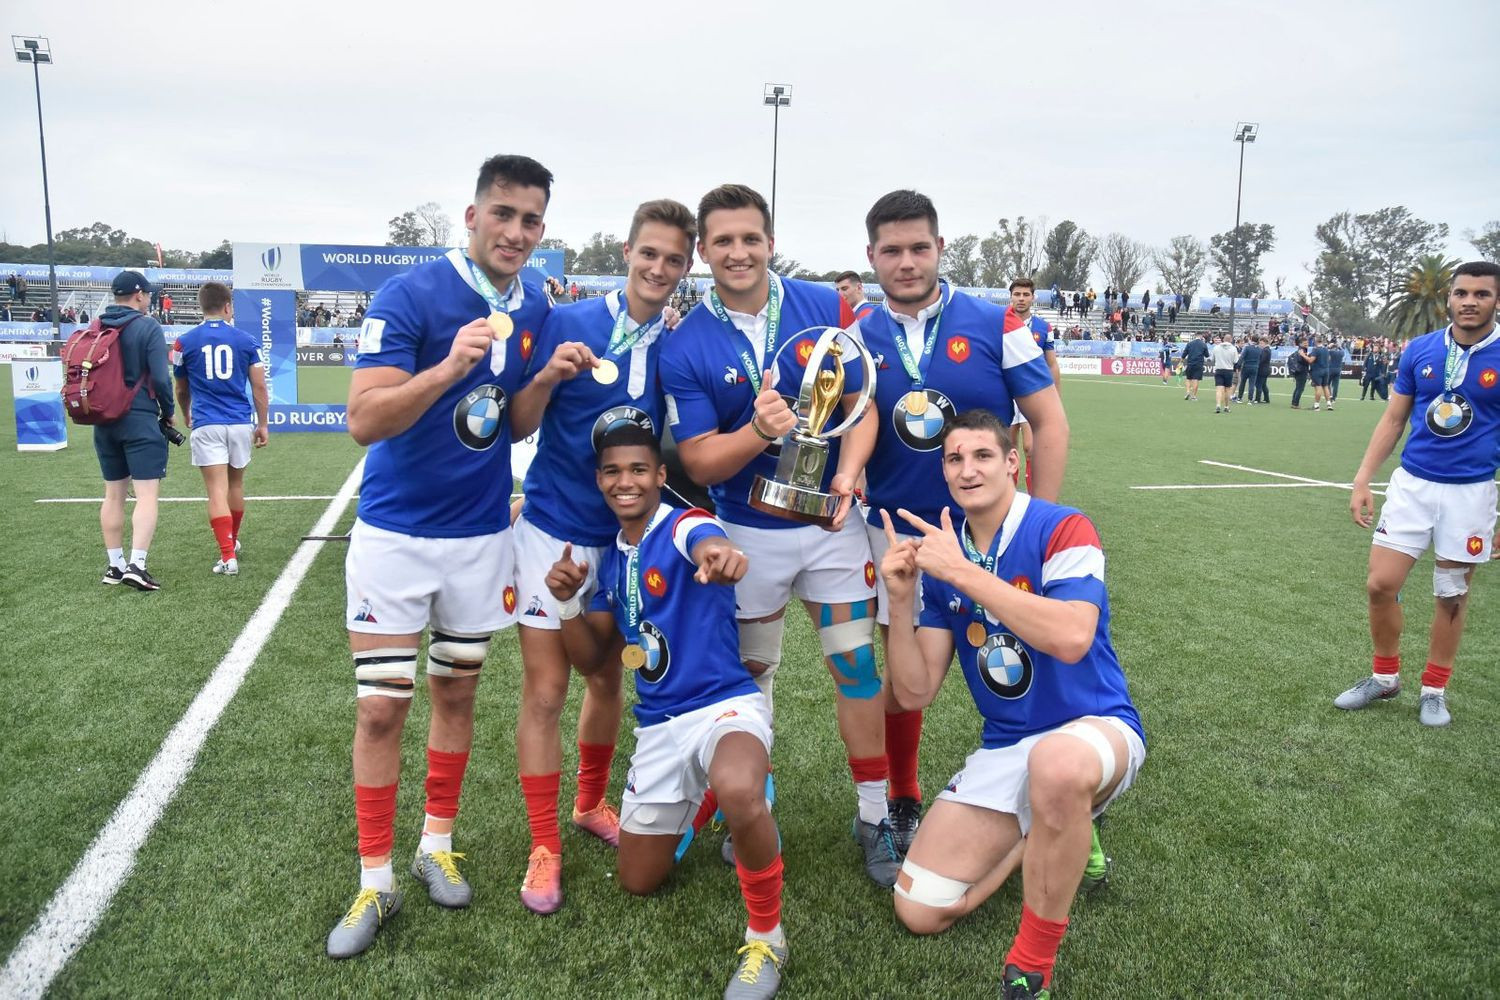 France defend Rugby Under-20 Championship after thrilling final against Australia